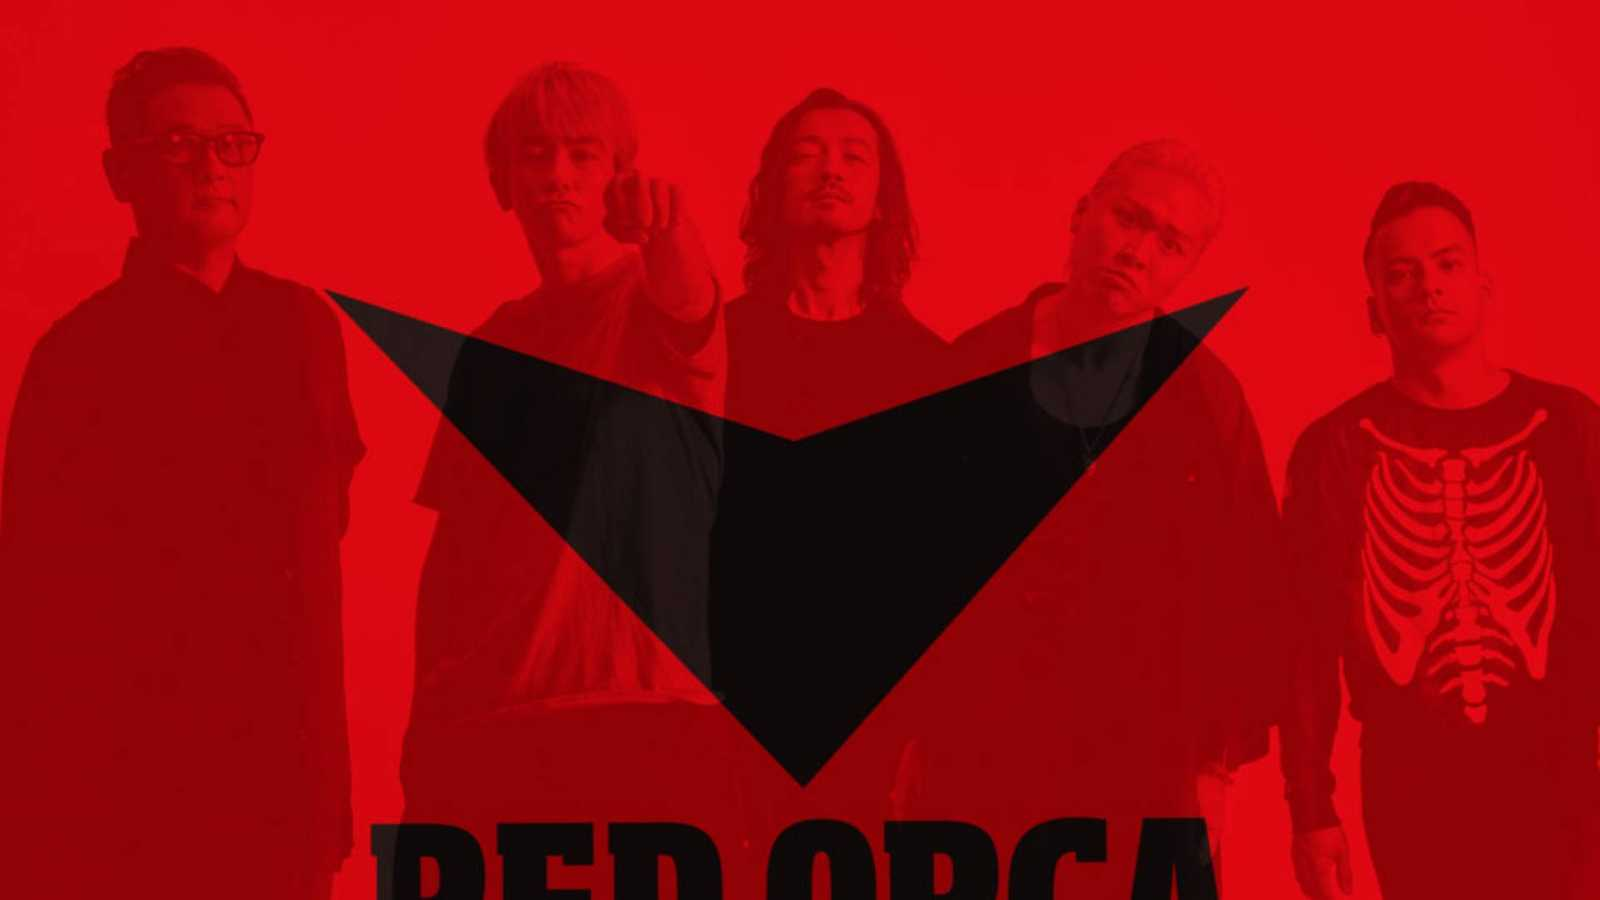 RED ORCA sort son premier album © RED ORCA. All rights reserved.